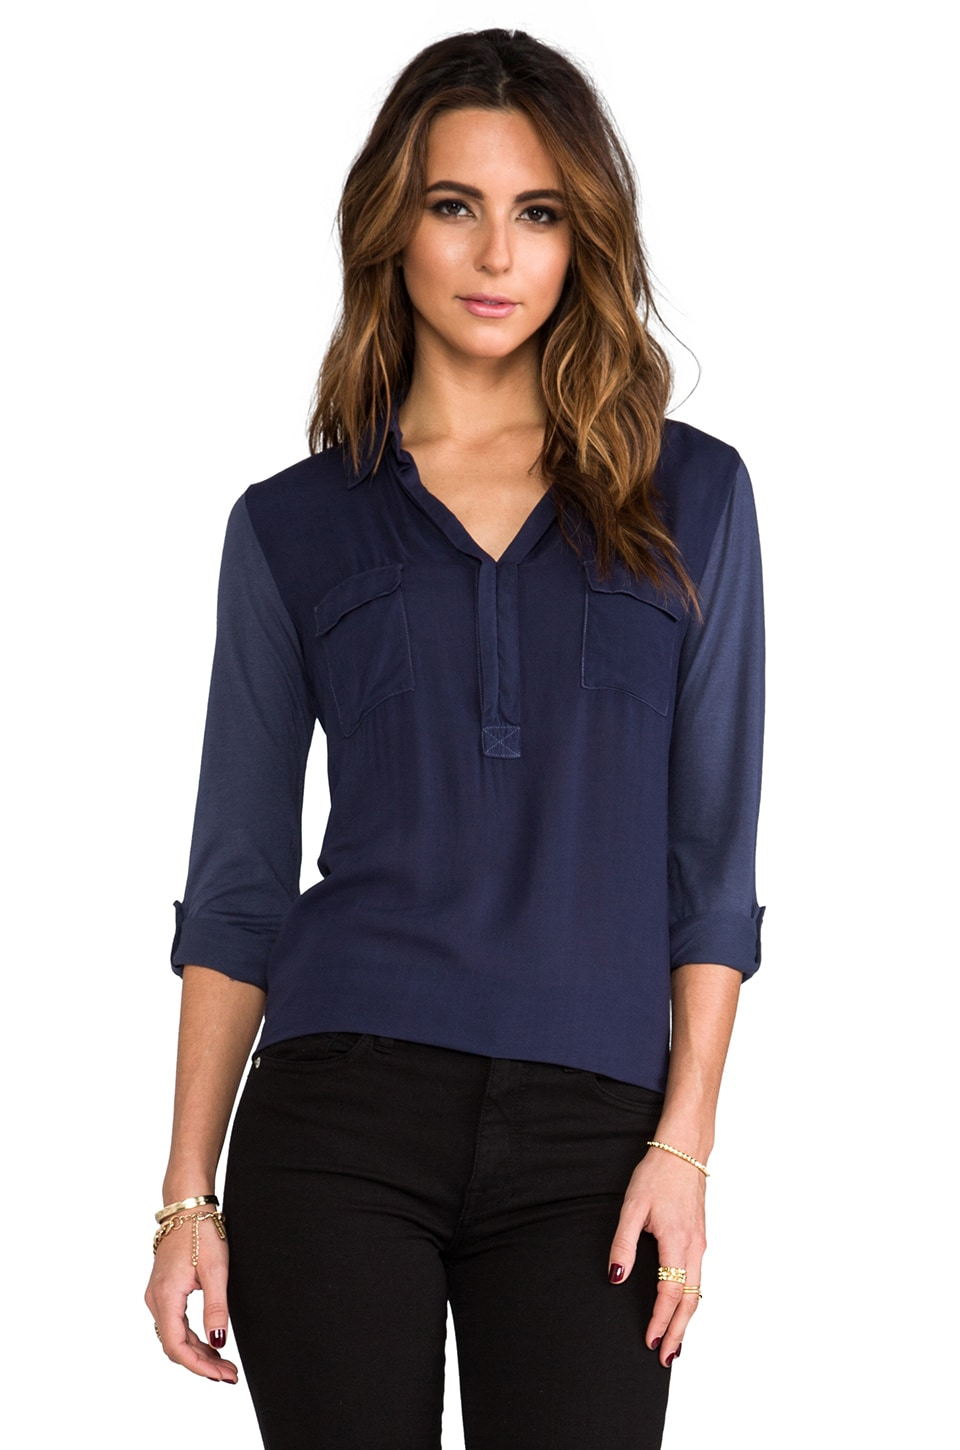 Splendid Shirting Top in Navy